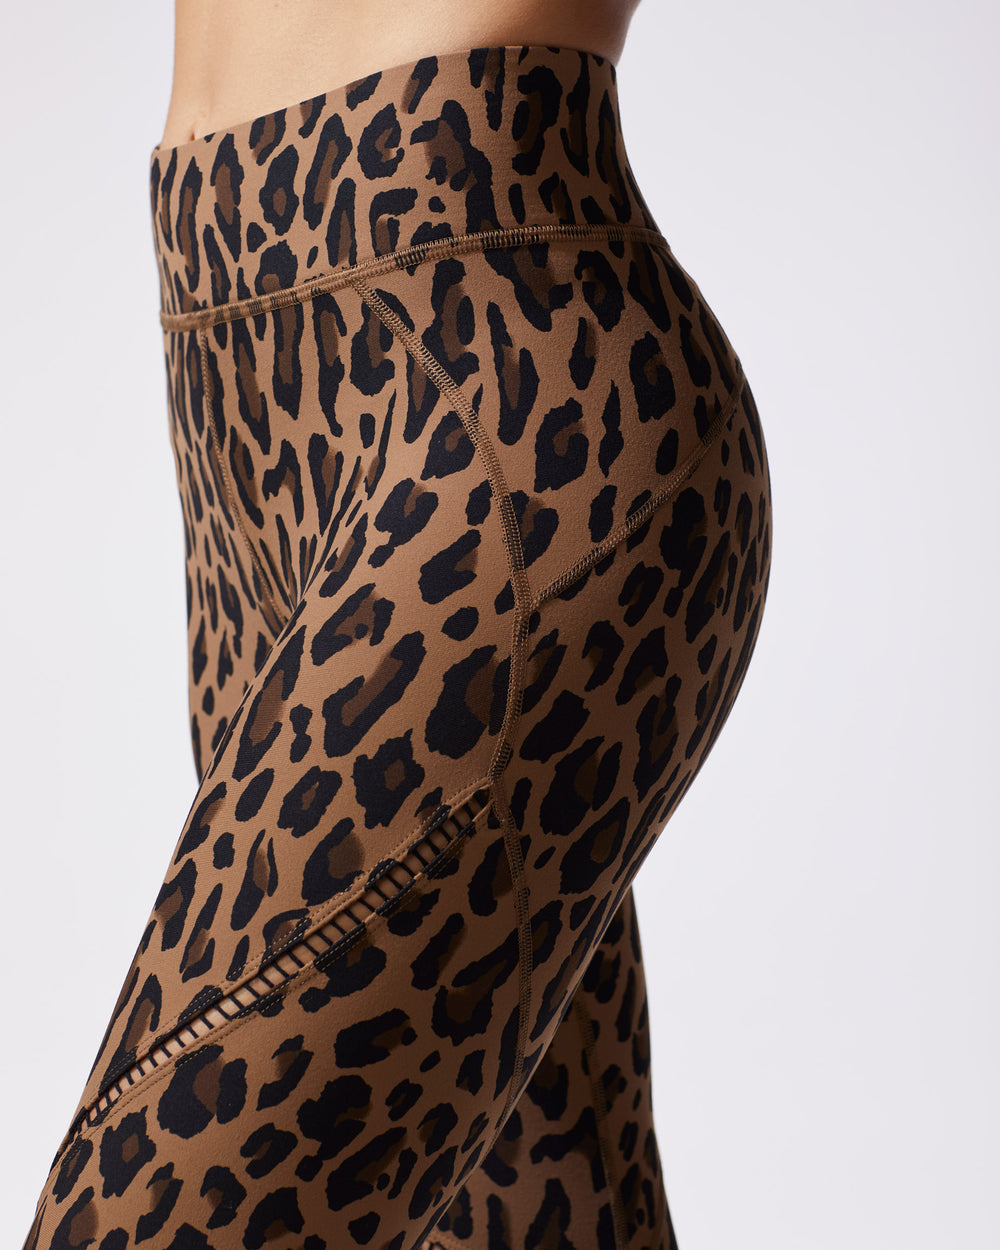 Primal Leopard Print Legging - Brown